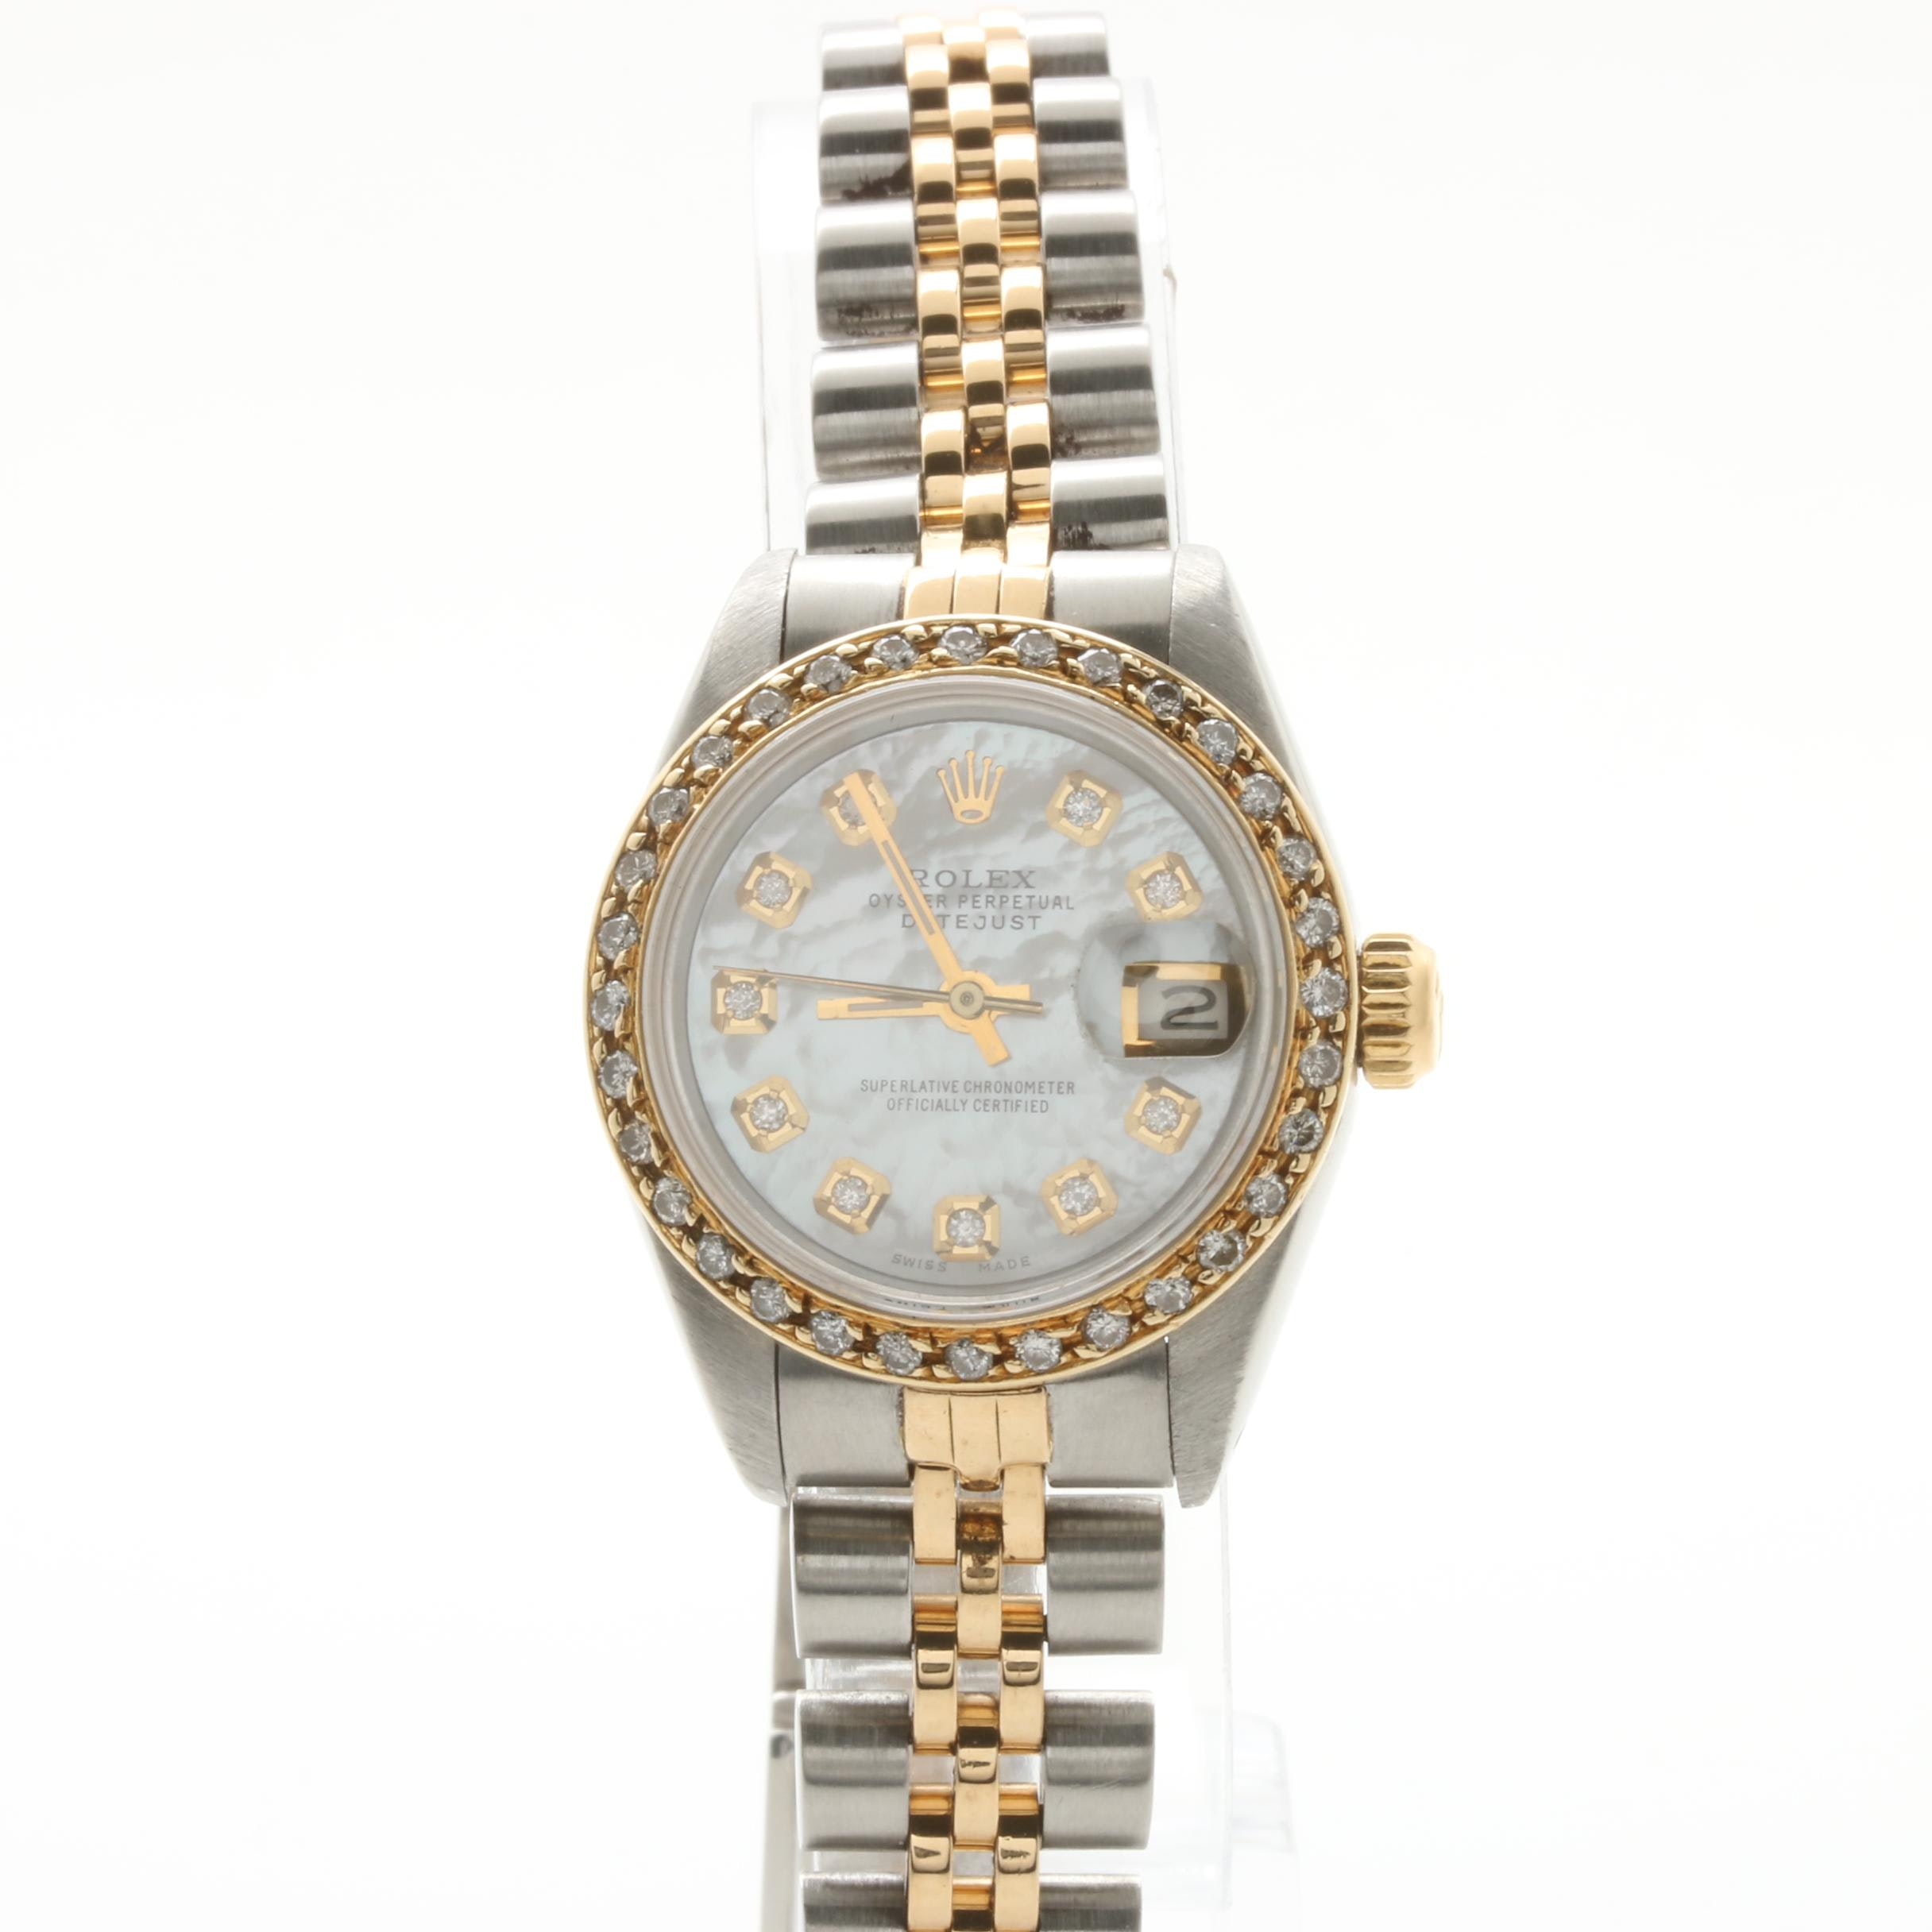 Rolex Datejust 18K Yellow Gold/SS Diamond and Mother of Pearl Dial Watch